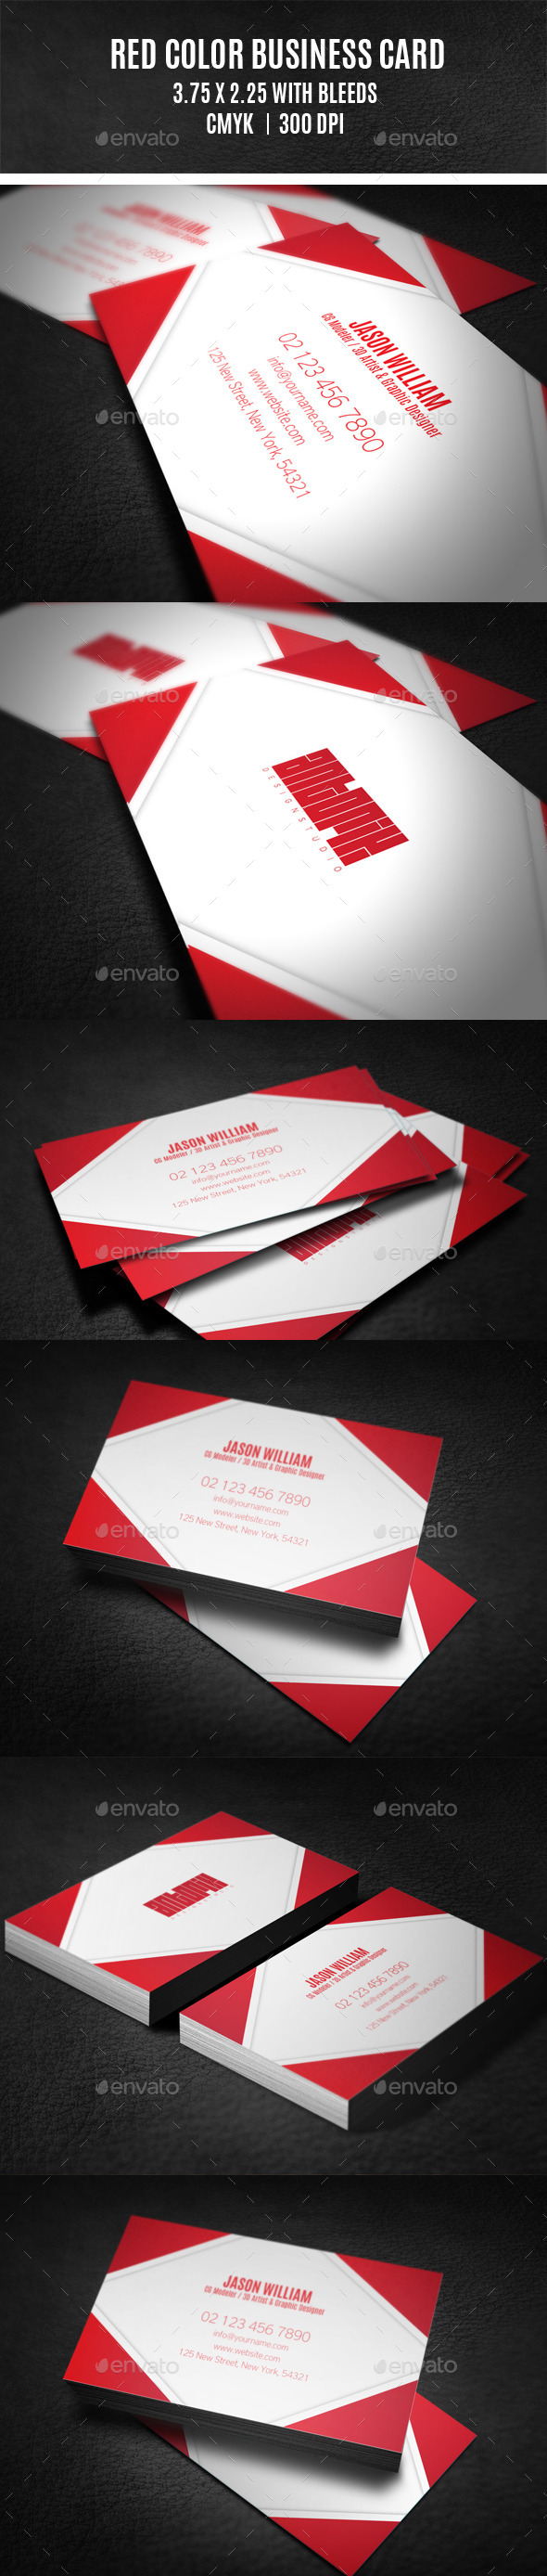 Red Color Business Card - Creative Business Cards